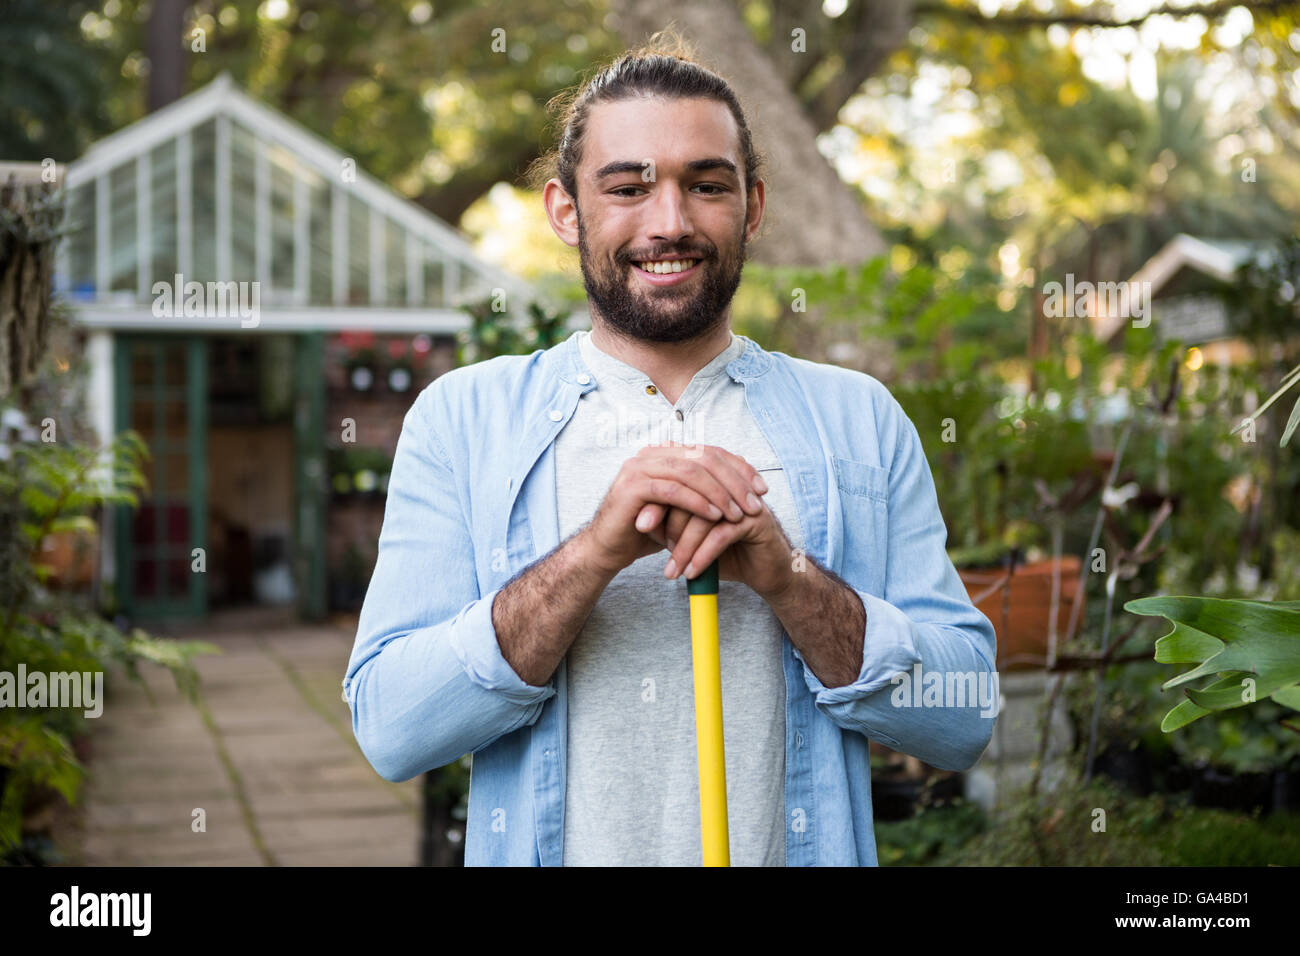 Portrait of happy gardener with work tool at garden - Stock Image